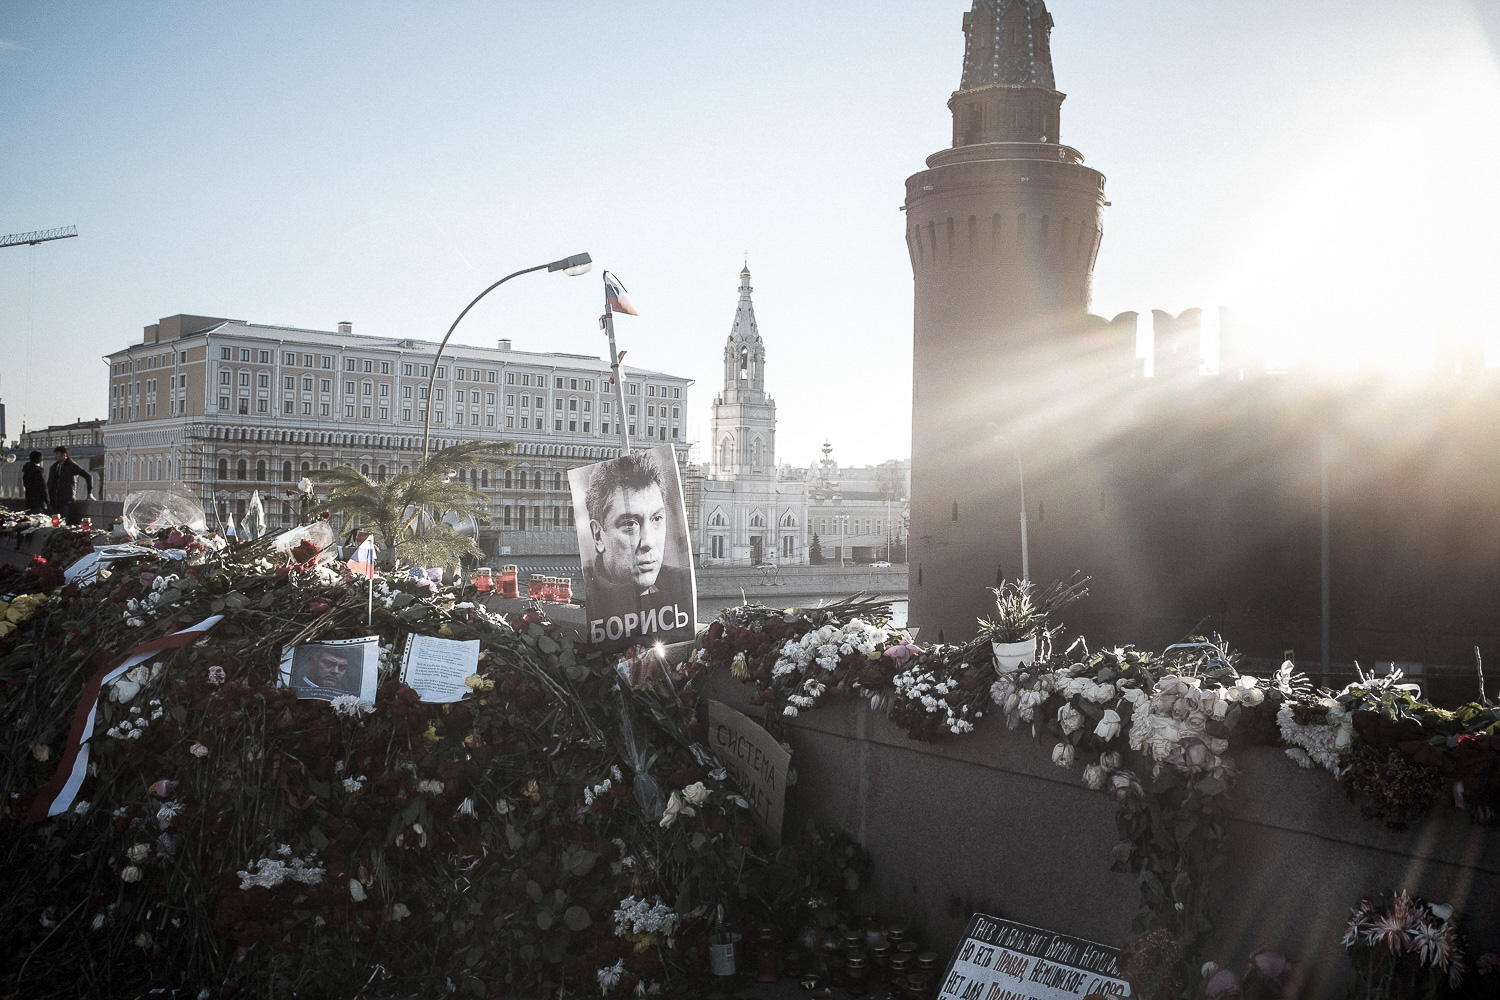 The Bolshoy Moskvoretsky bridge few days after Boris Nemcov murder.